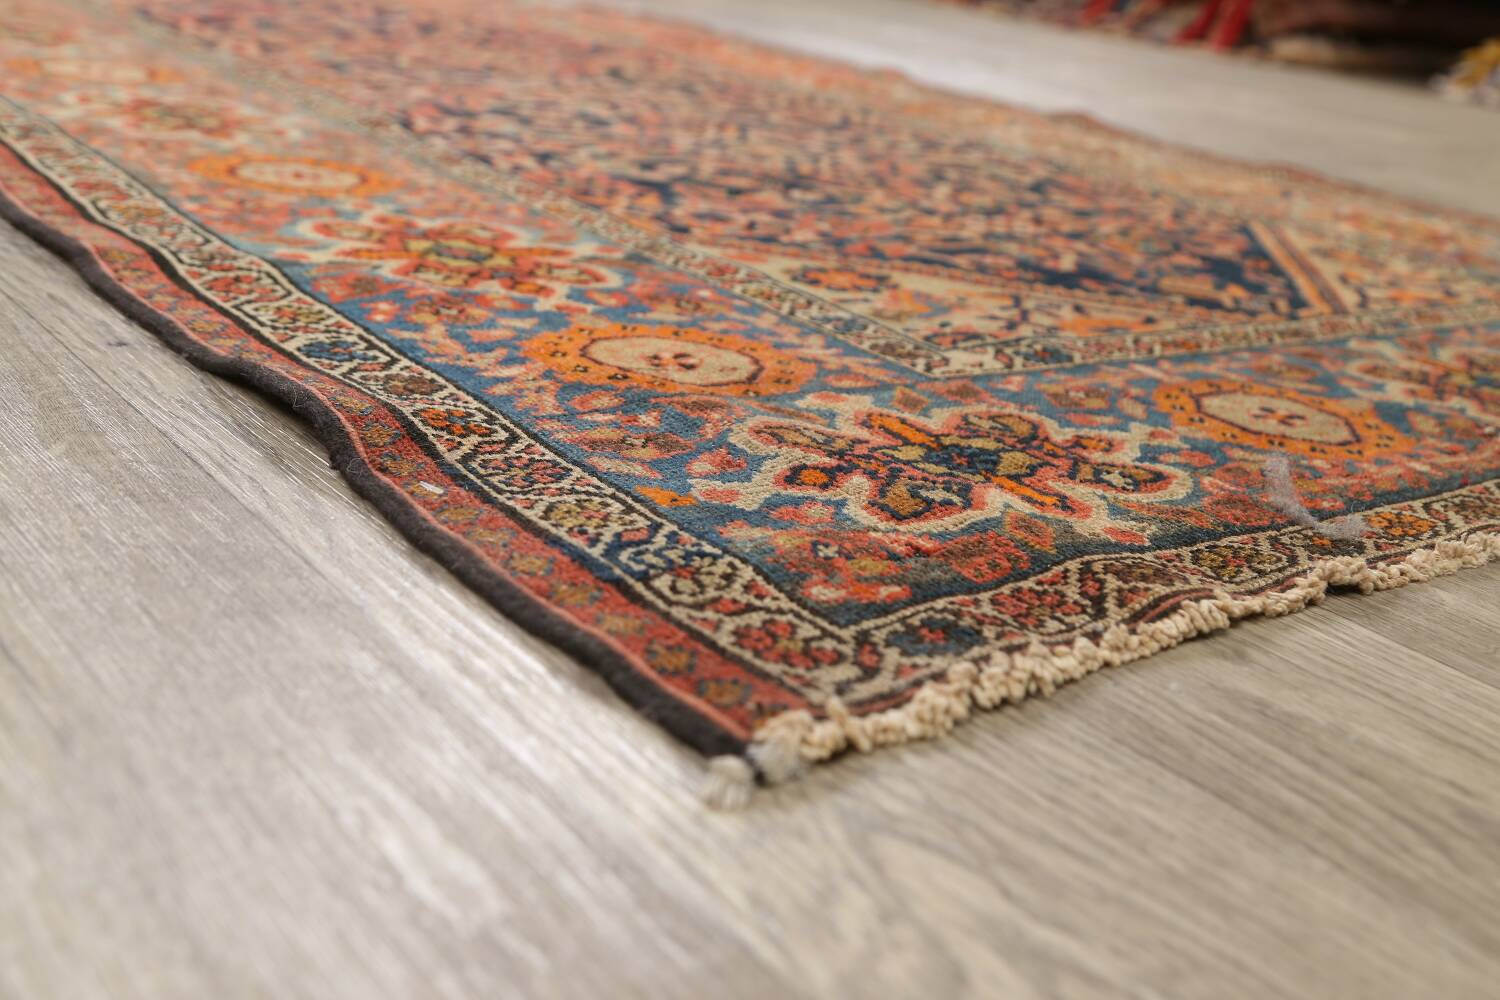 Pre-1900 Antique Vegetable Dye Malayer Persian Area Rug 4x6 image 6